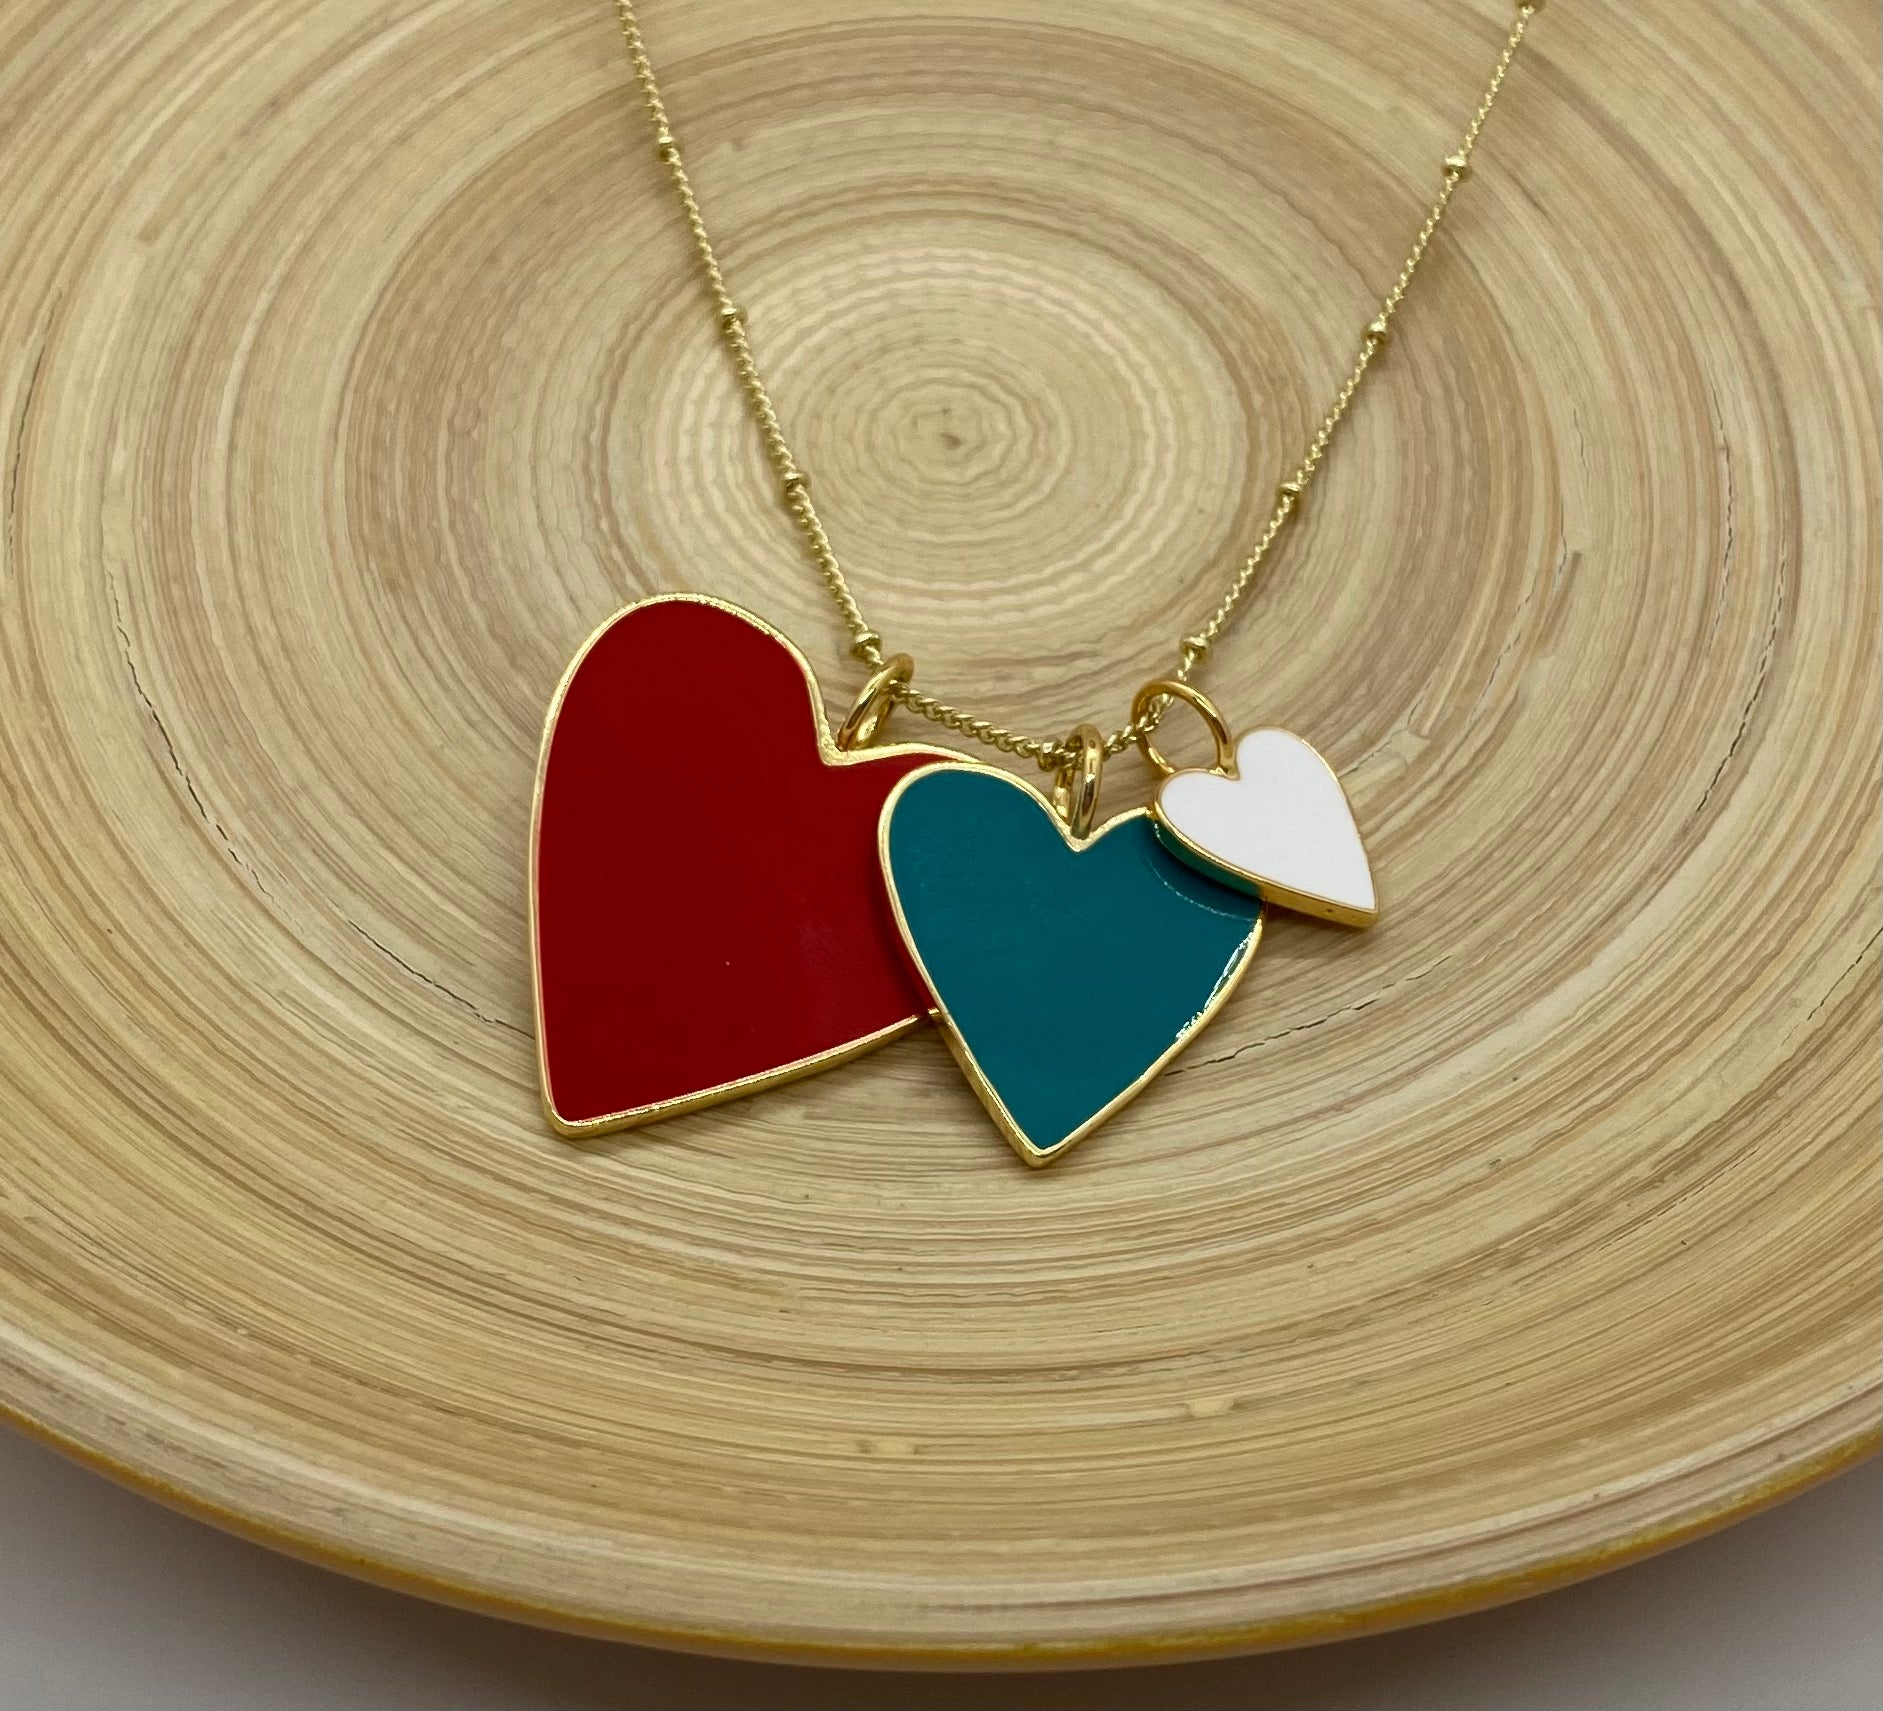 Heart Trio Necklace - Red Teal and White